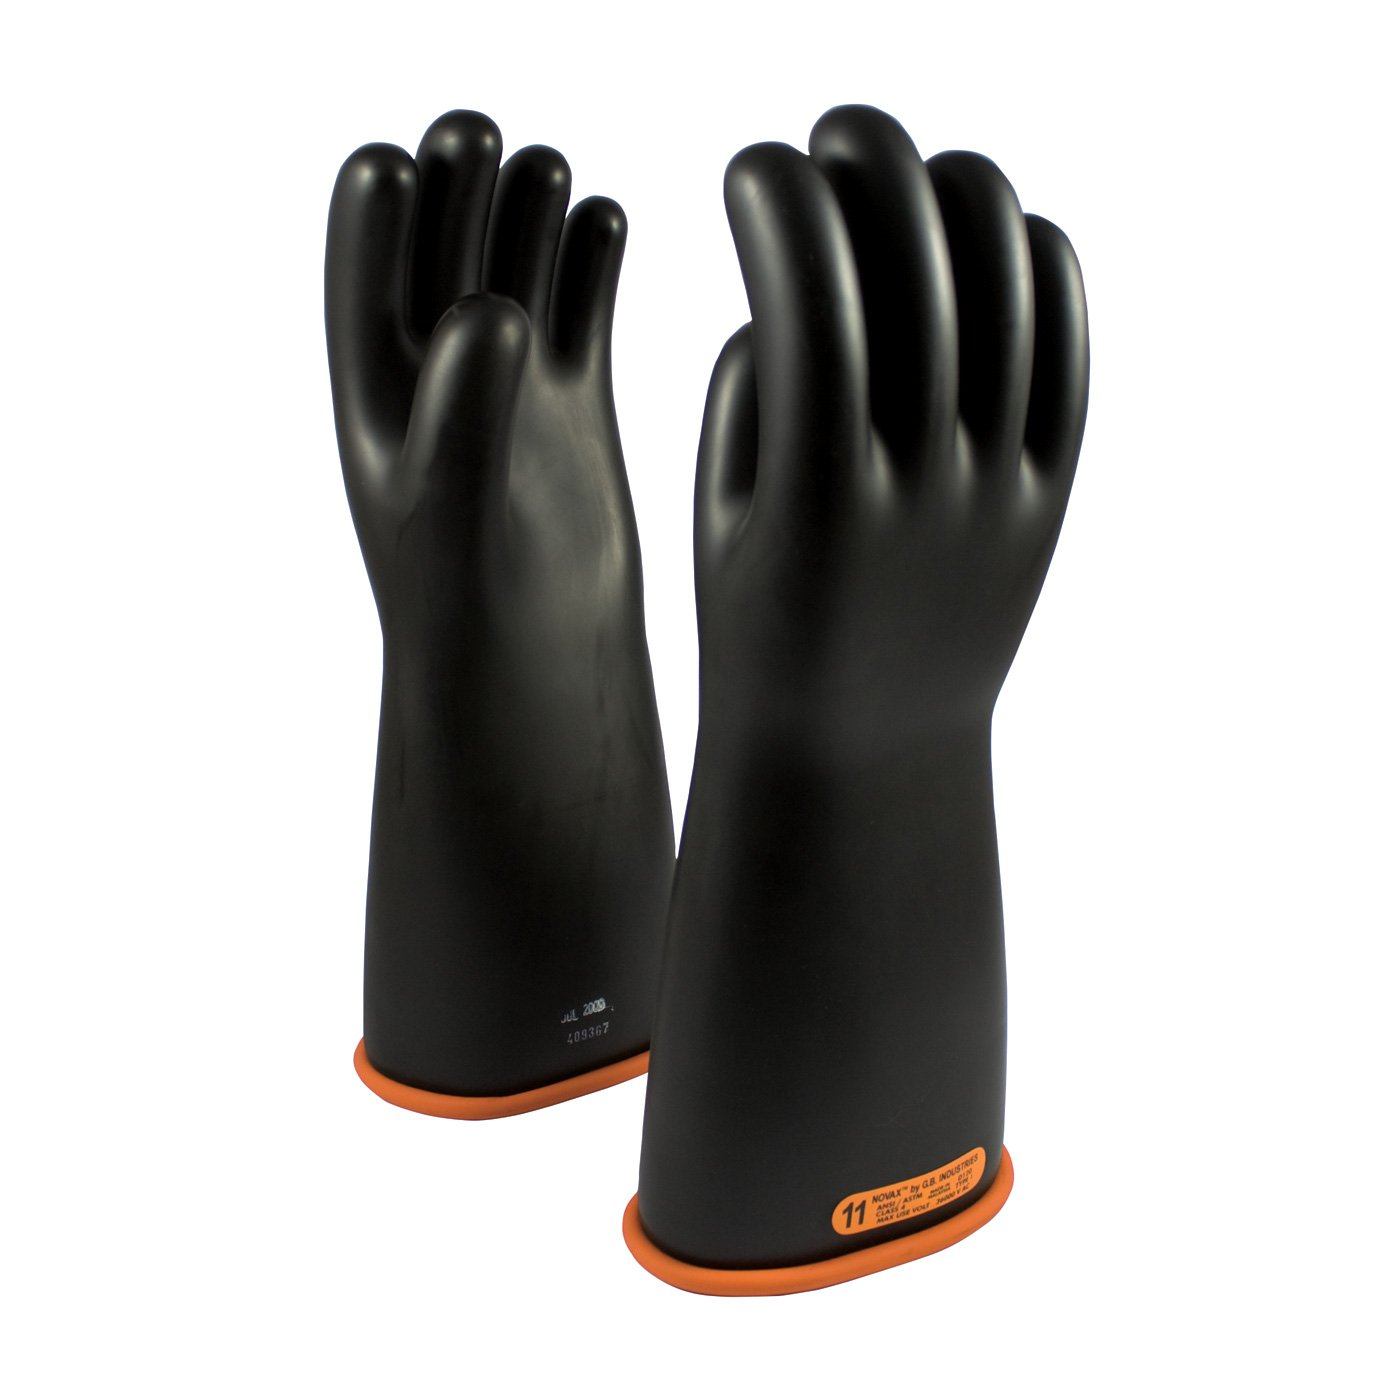 Safety Products Inc Novax Rubber Insulating Gloves